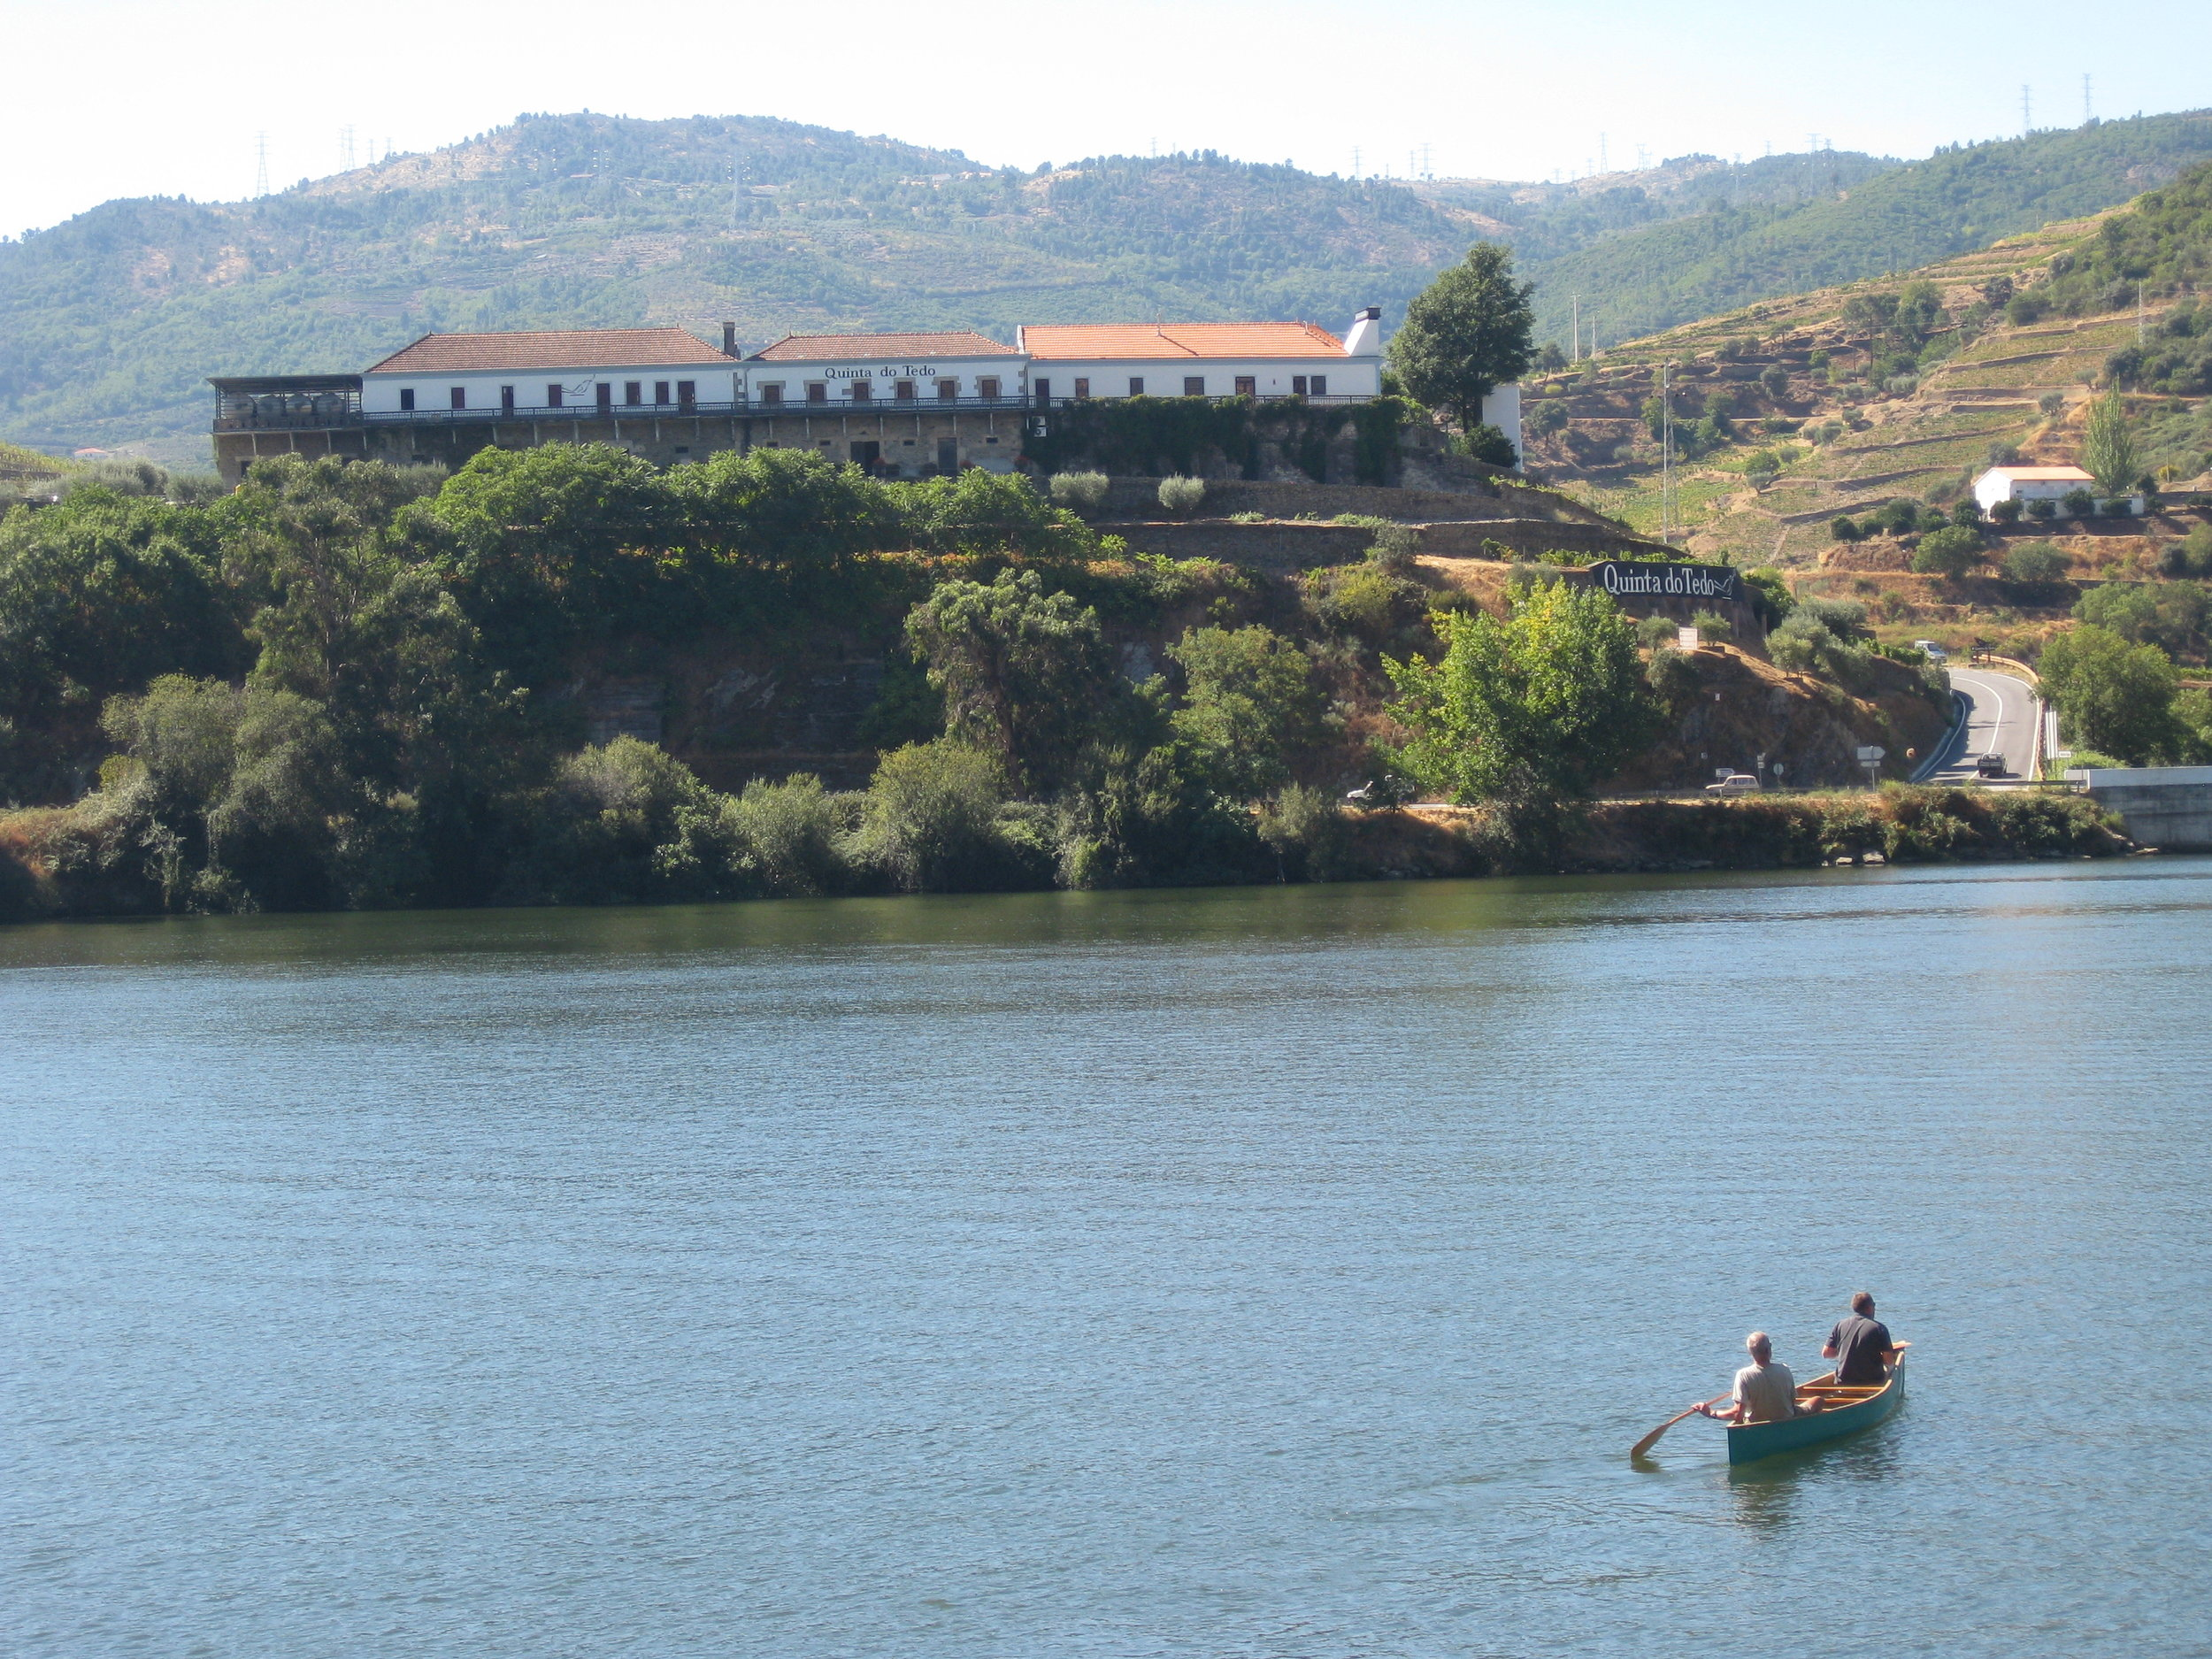 Canoeing on the Douro.